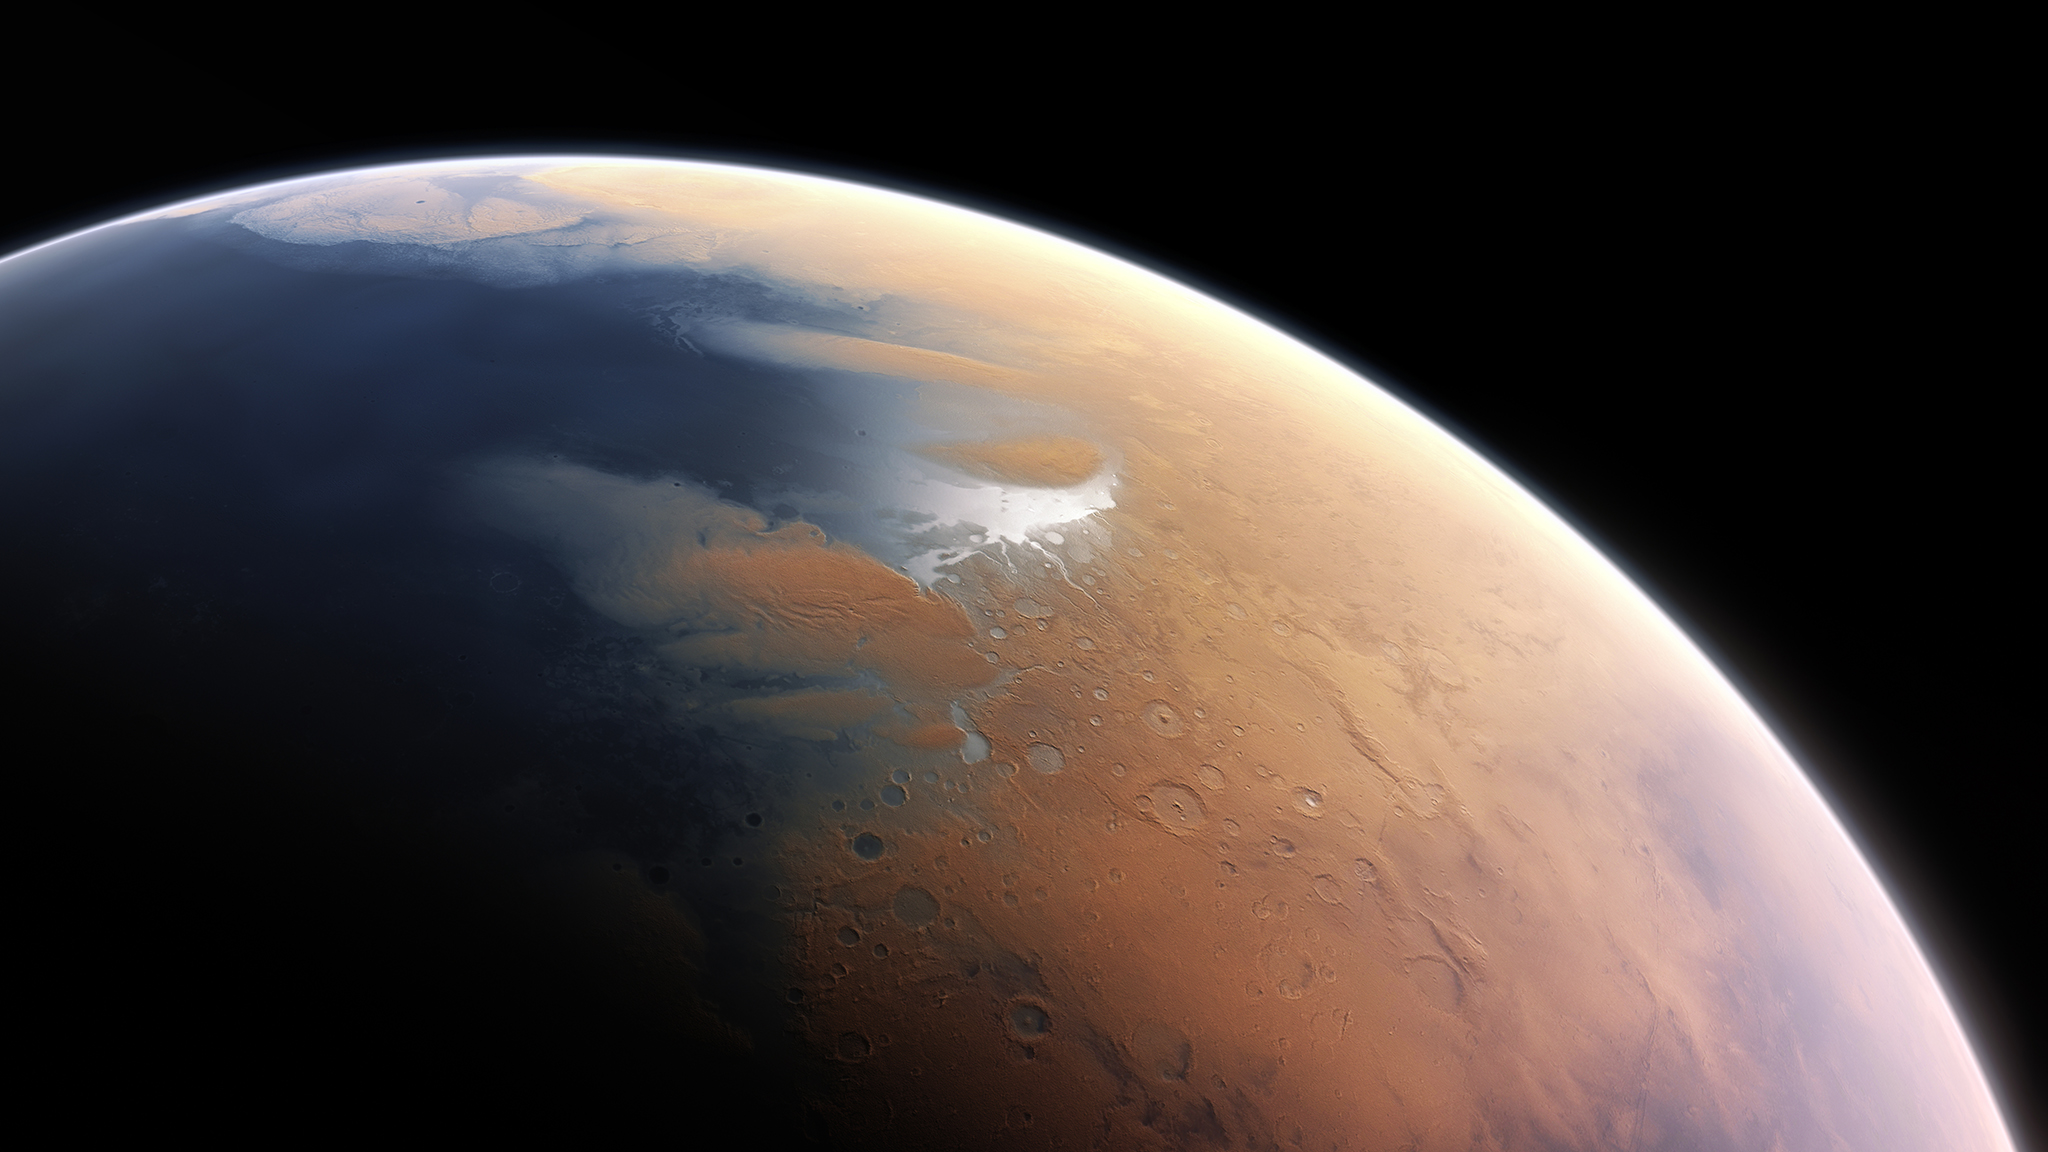 This artist's impression shows how Mars may have looked about four billion years ago